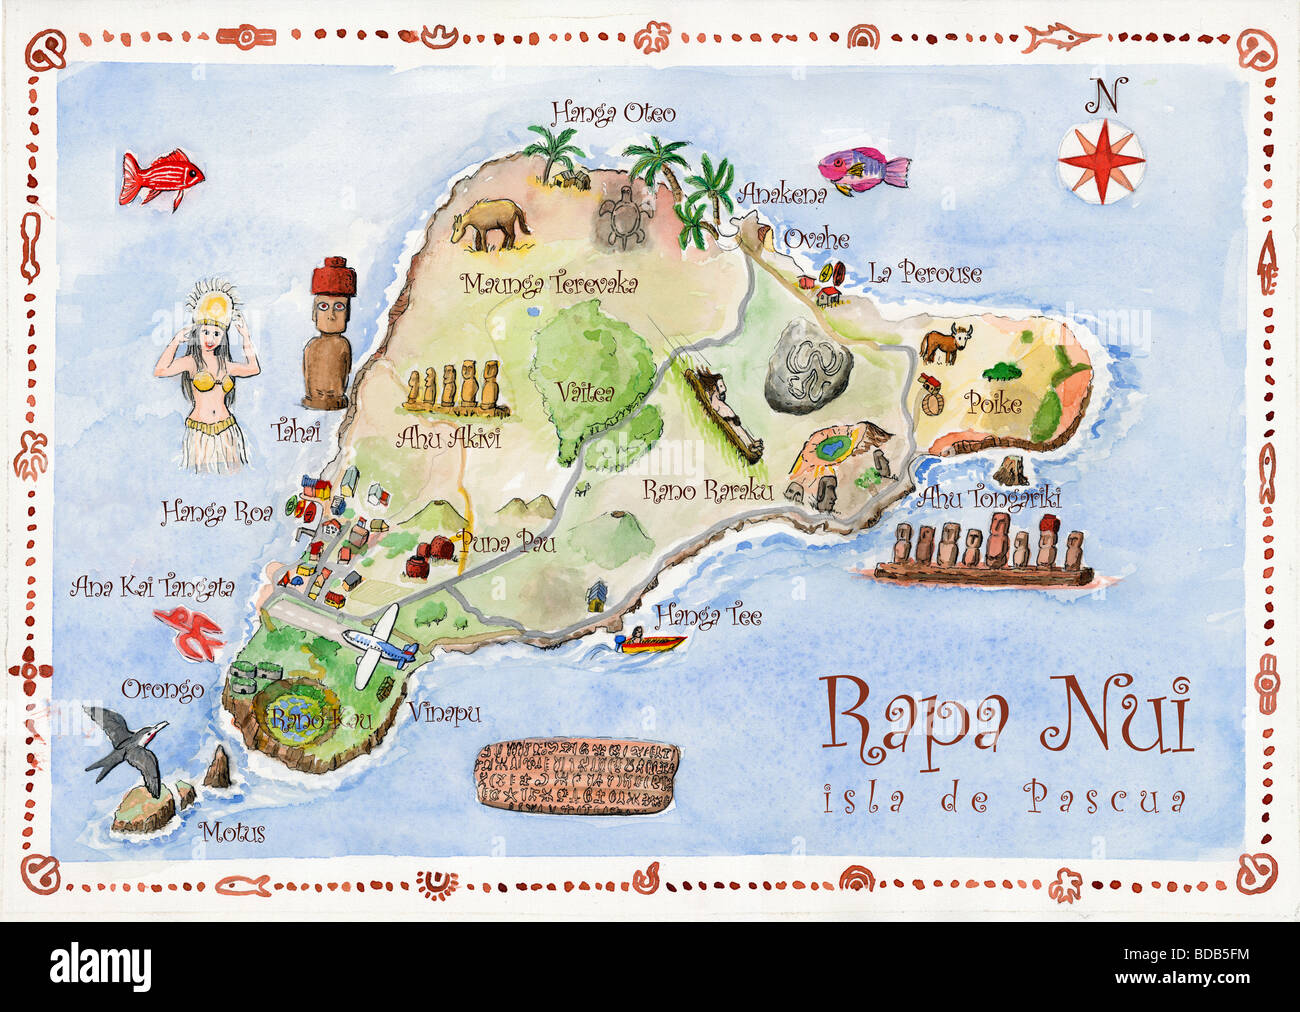 Easter Island Map Chile Stock Photo 25446728 Alamy